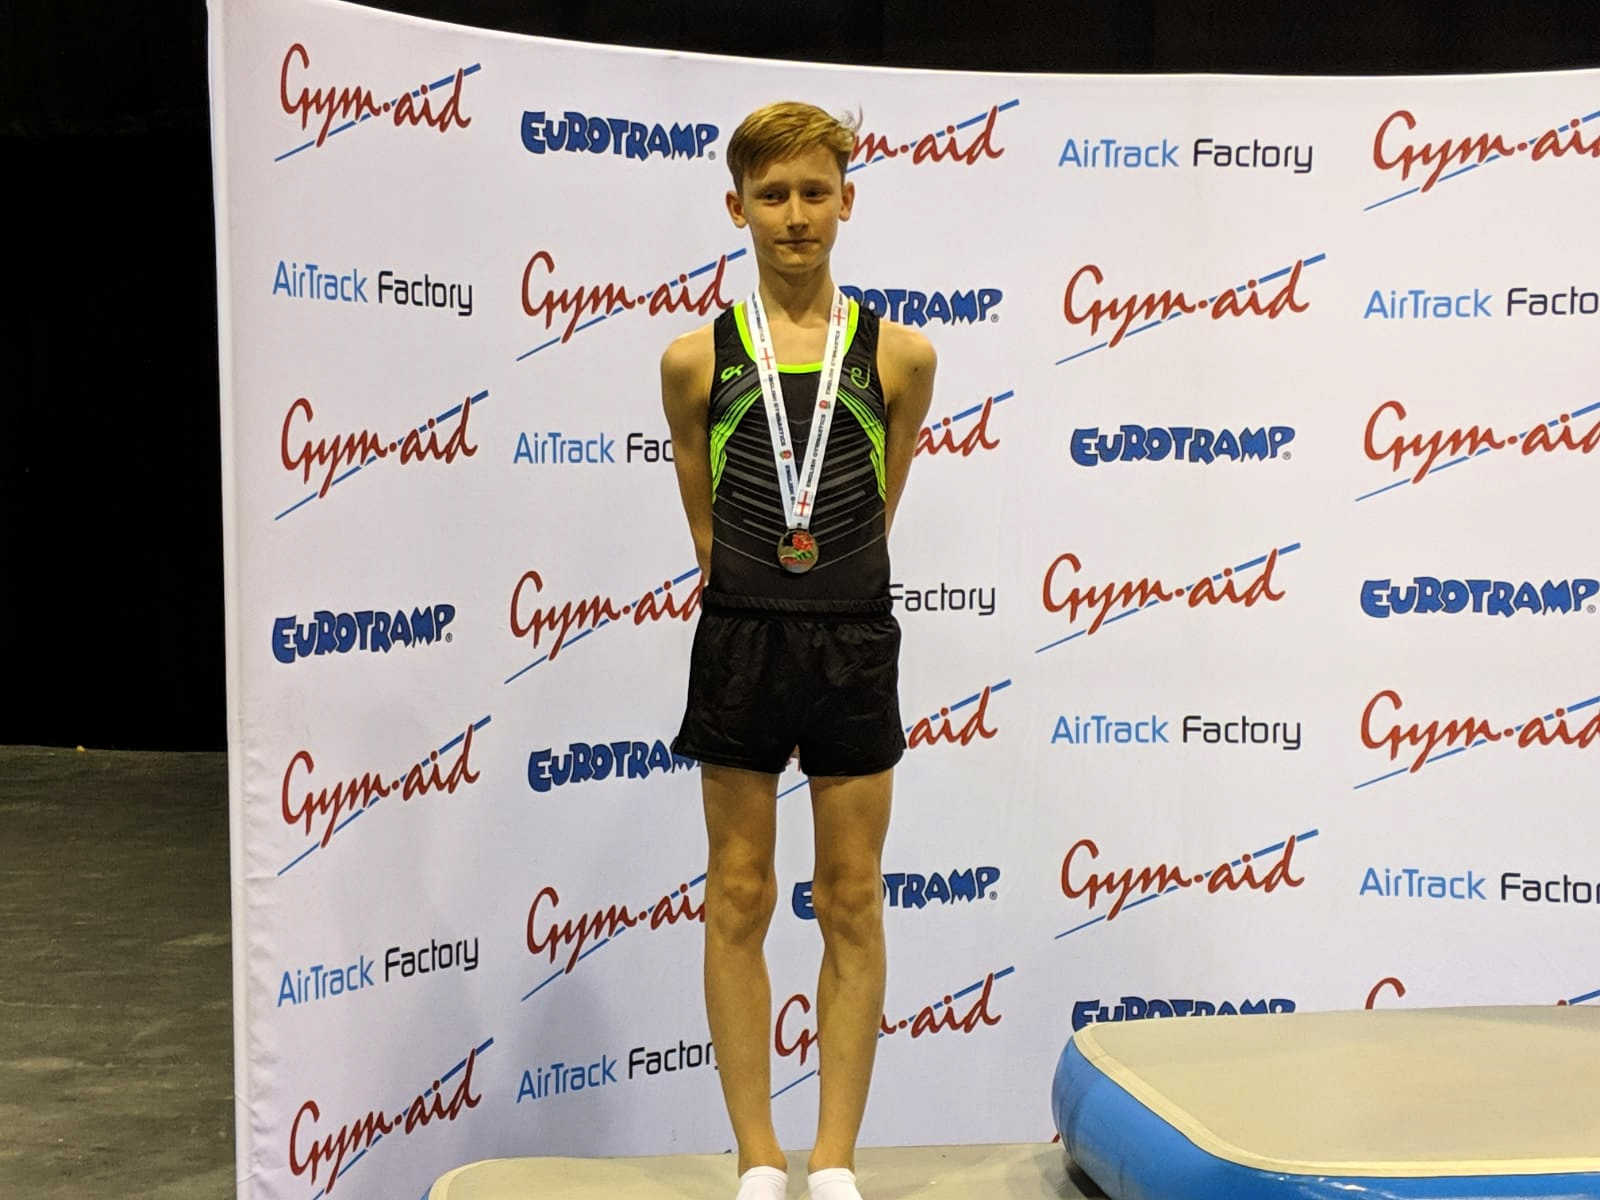 Many Of Our Trampoline Club Members Achieved A Qualification To The English Championships In September.